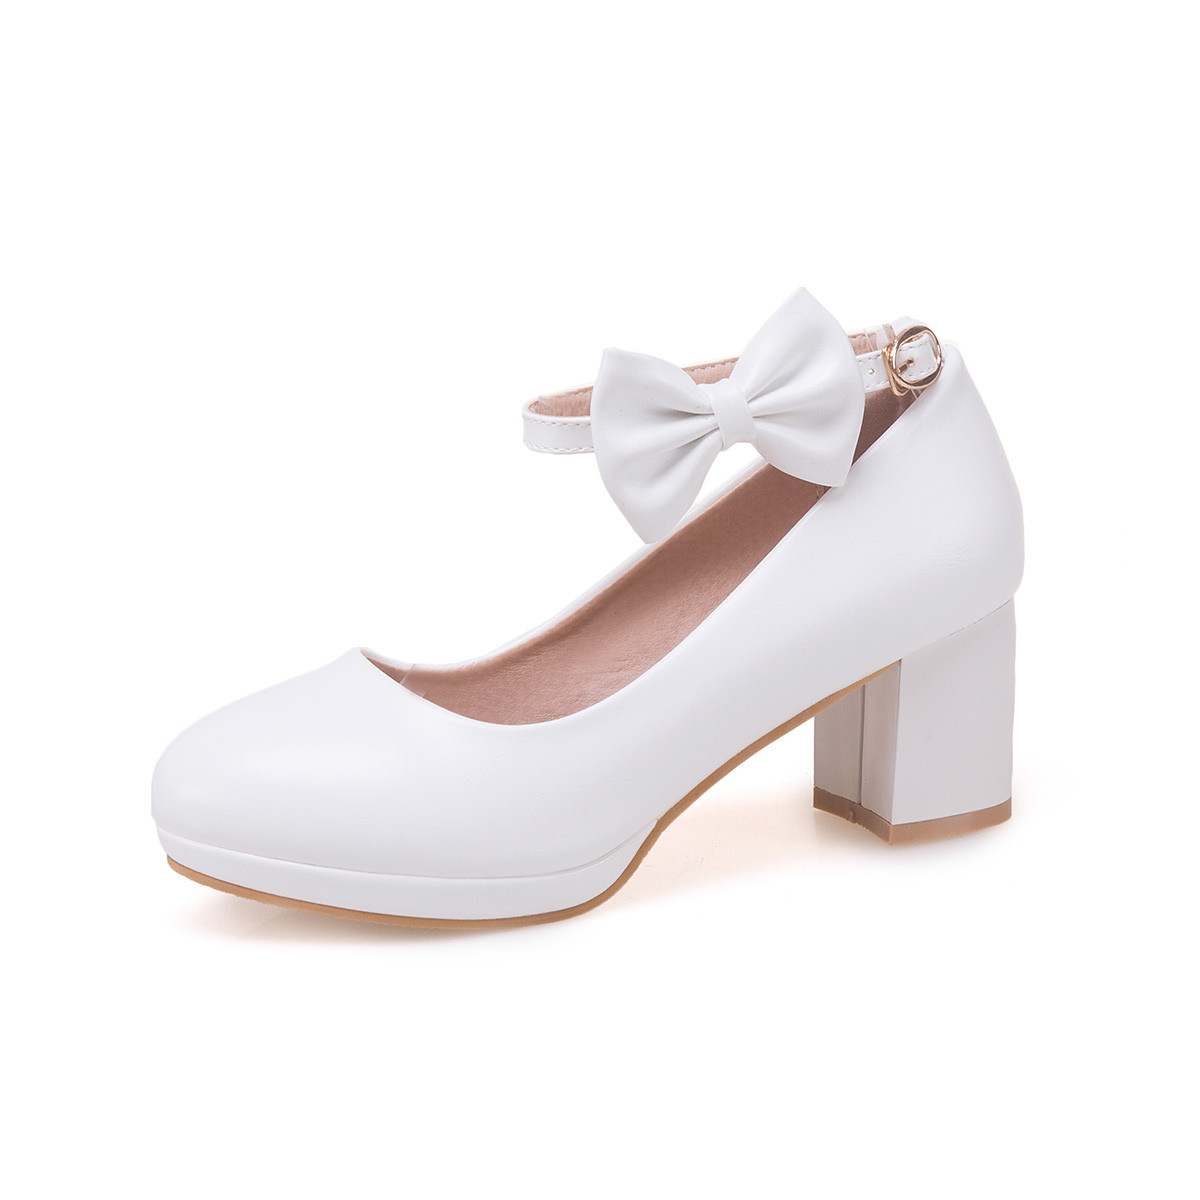 Fashion! Student Dance Shoes High-heeled Bow Knot Shoes Size 30-36 for bigger girl Kid Leather Shoes Flower Girls Shoes White